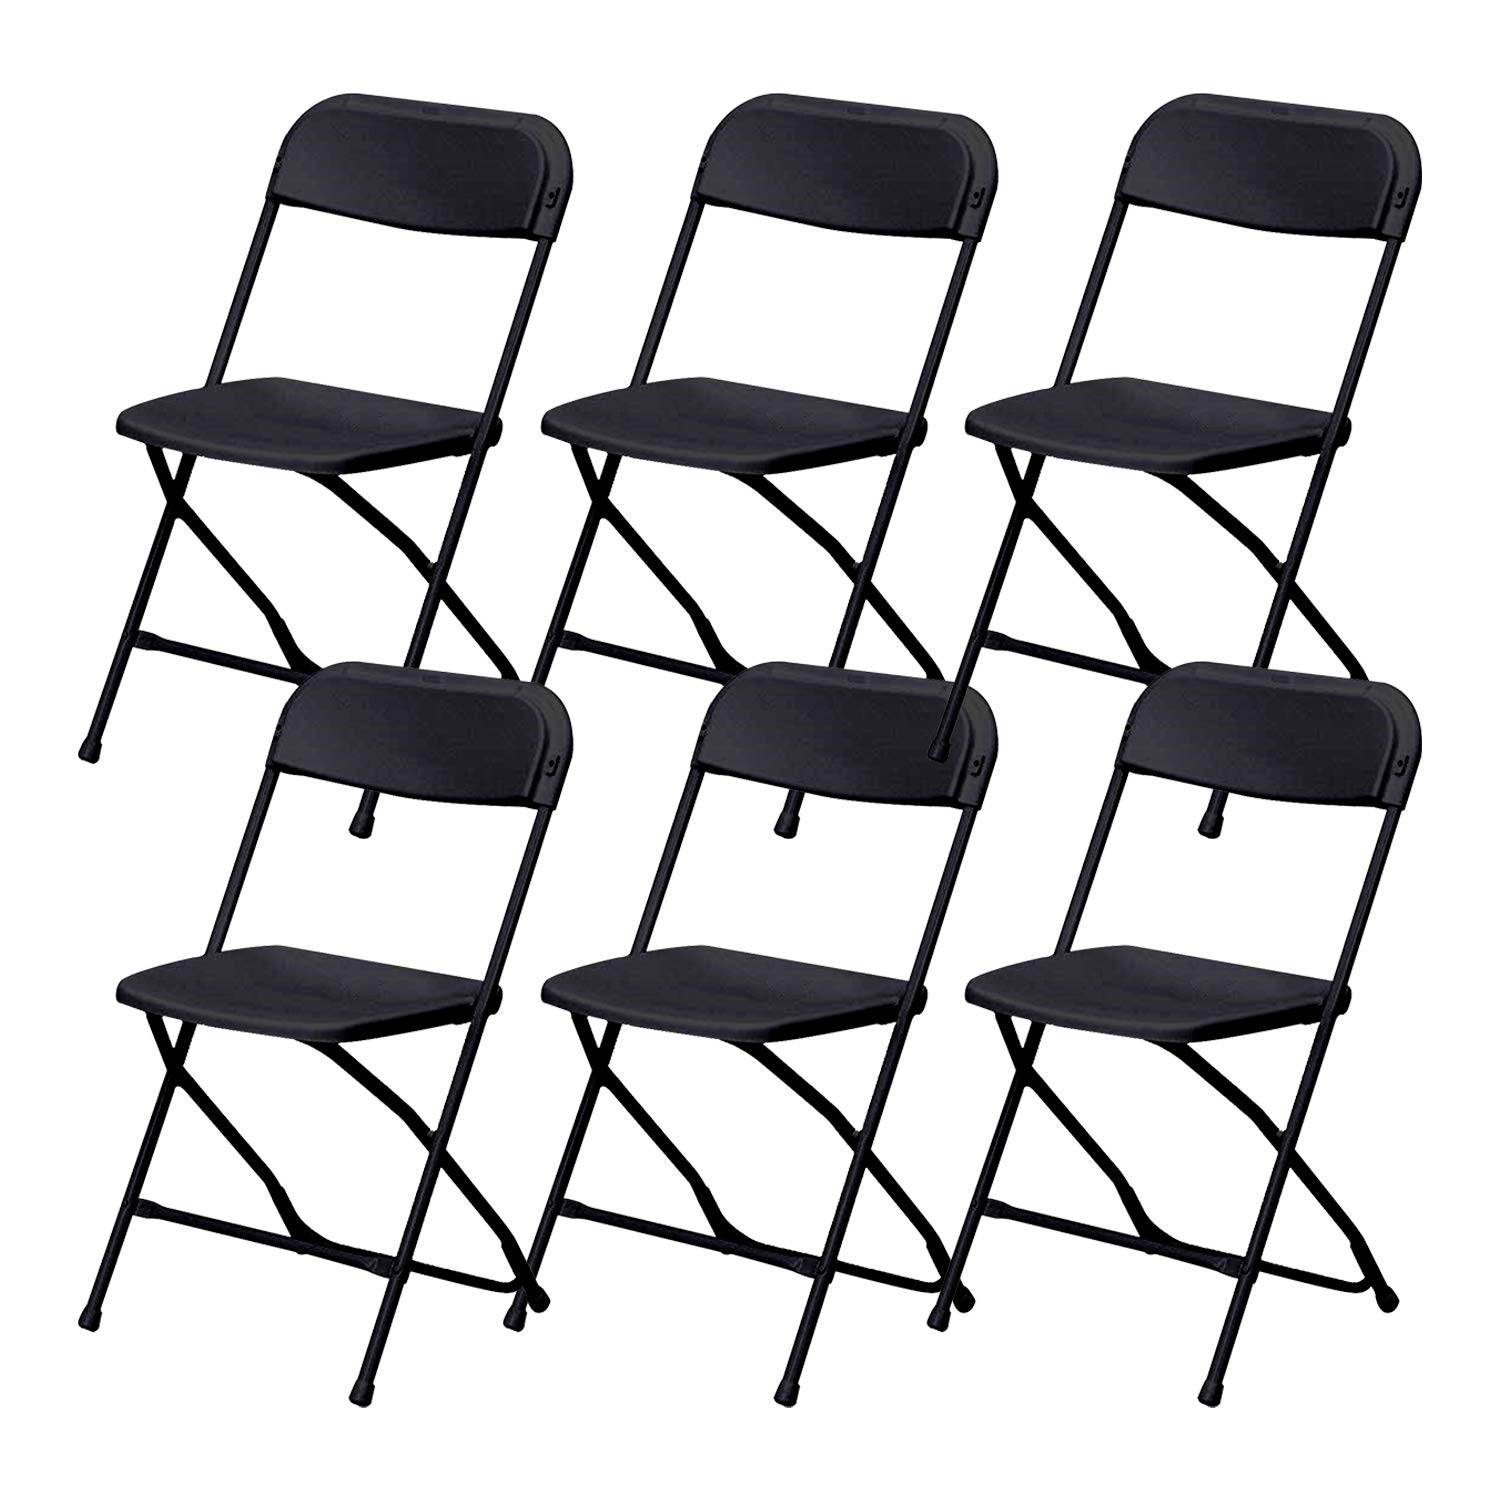 Black Plastic Folding Chairs Set of 6 Lightweight Folding Chairs,Folding Chair 300 lbs Weight Capacity for Events, Premium Lifetime Fold Up Chair Portable 18'' L x 18'' W x 31'' by ZeZe Chair